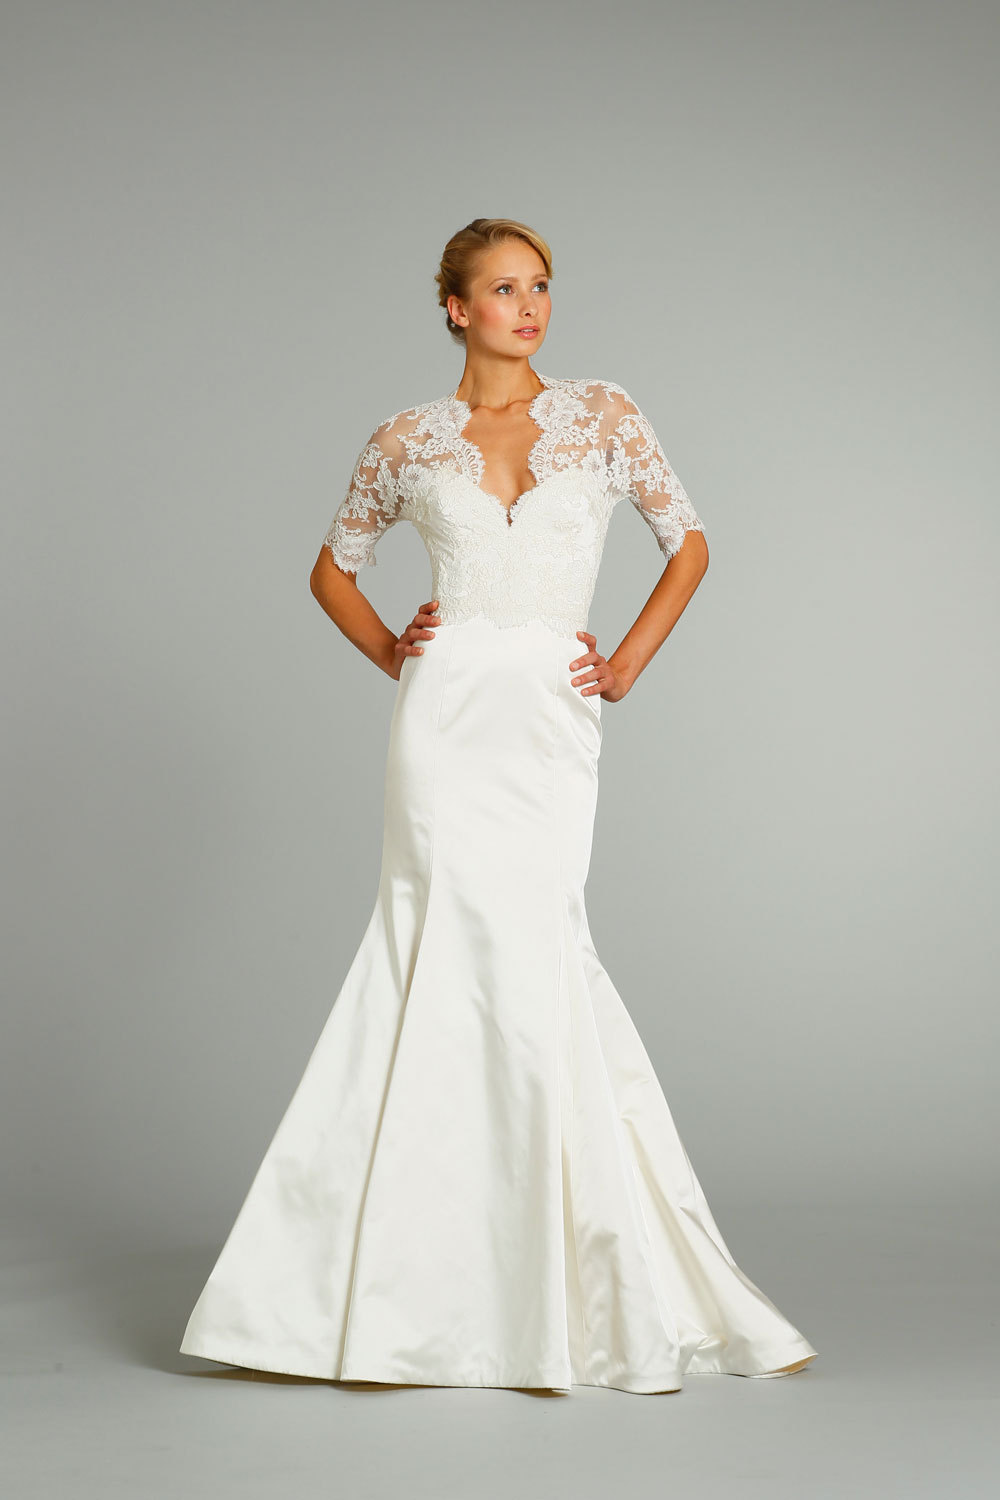 Fall-2012-wedding-dress-jim-hjelm-bridal-gowns-8256.full